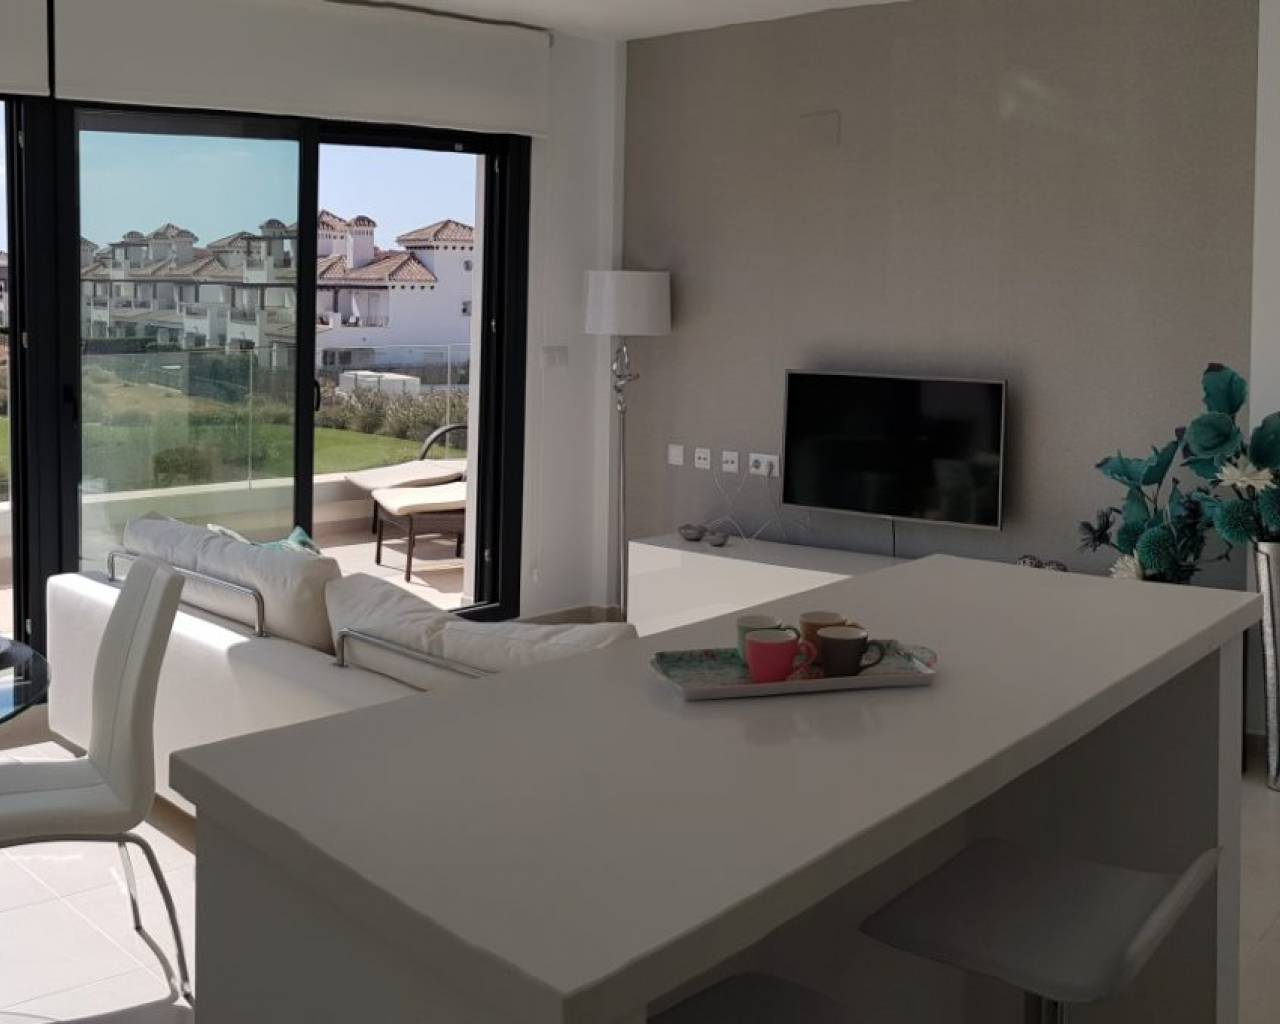 Resale - Semi Detached Villa - Murcia Services Is Your One Stop For All Real Estate Needs In Murcia!